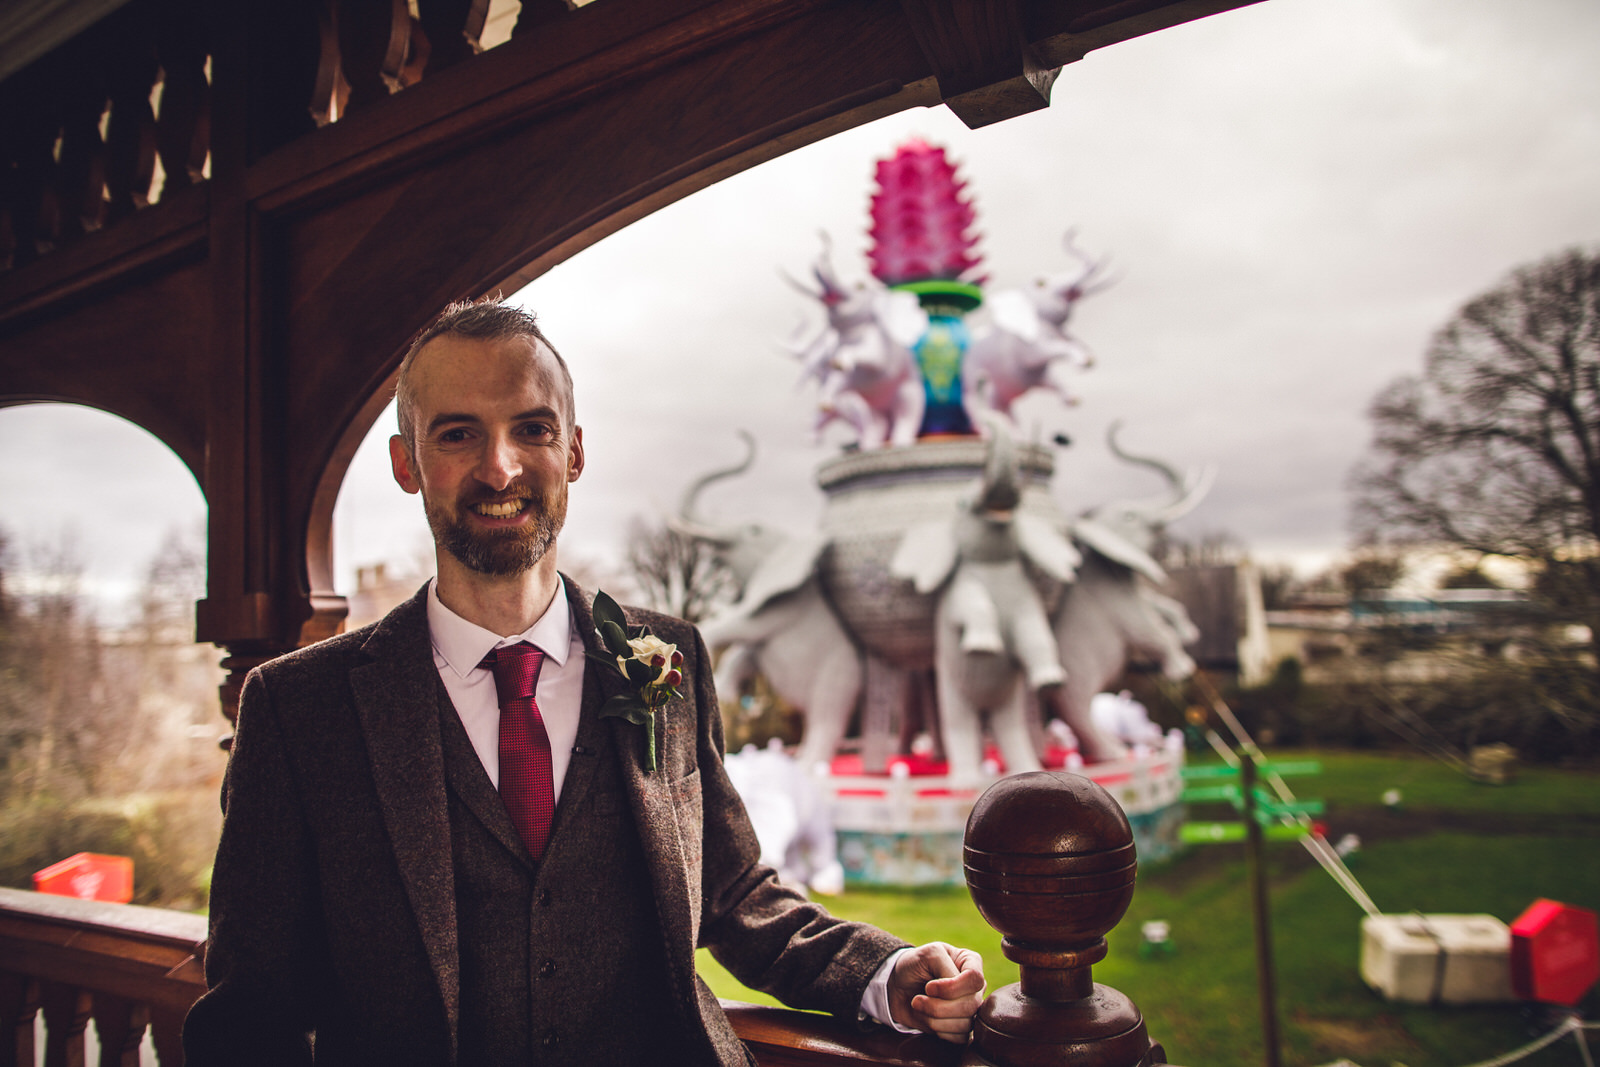 Roger_kenny-wedding-photographer-wicklow-dublin-zoo_013.jpg